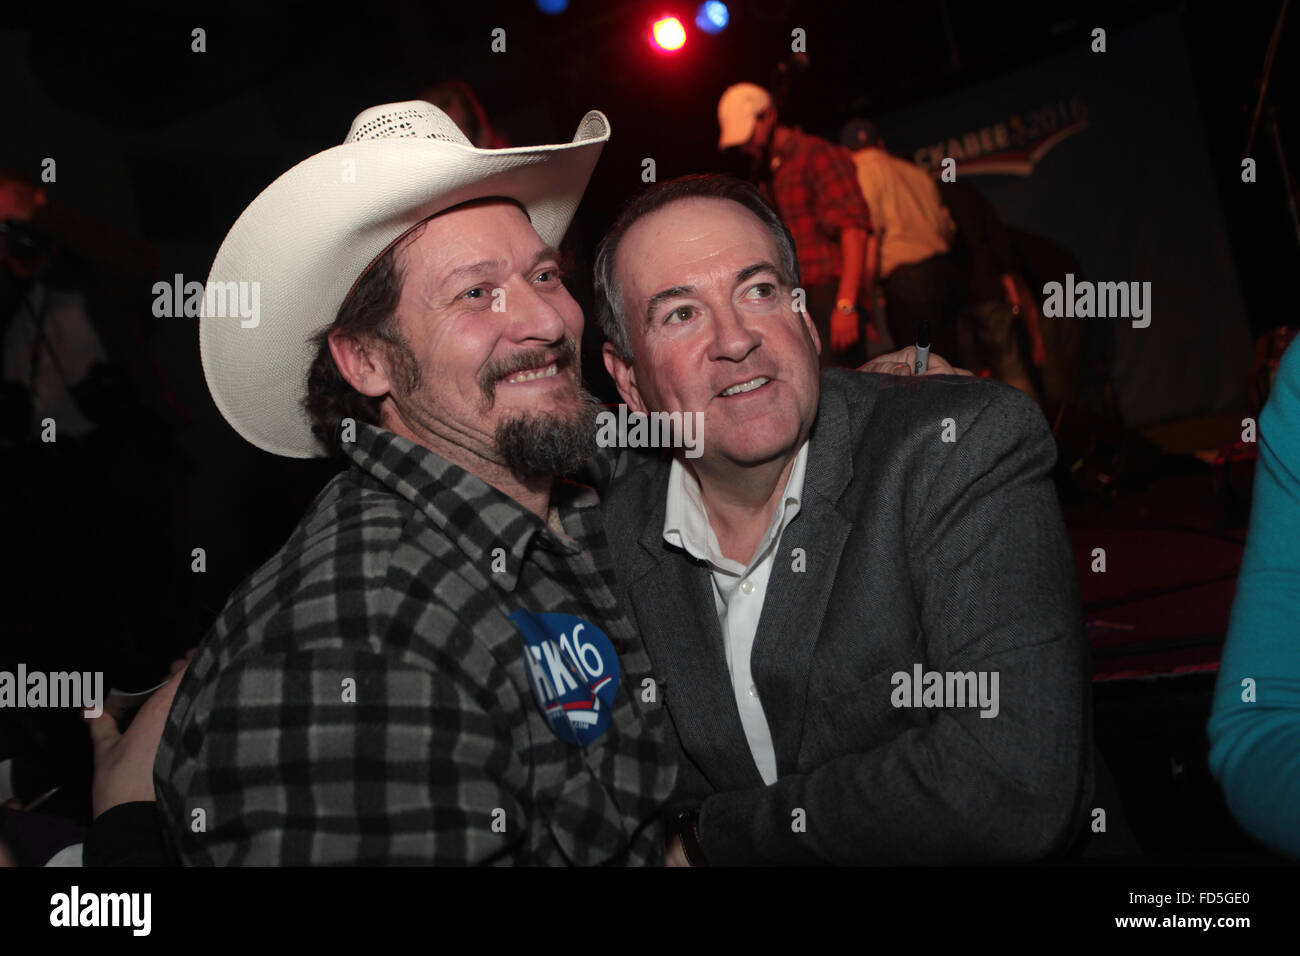 Former Gov. and GOP presidential candidate Mike Huckabee poses with a supporter during a campaign rally featuring - Stock Image